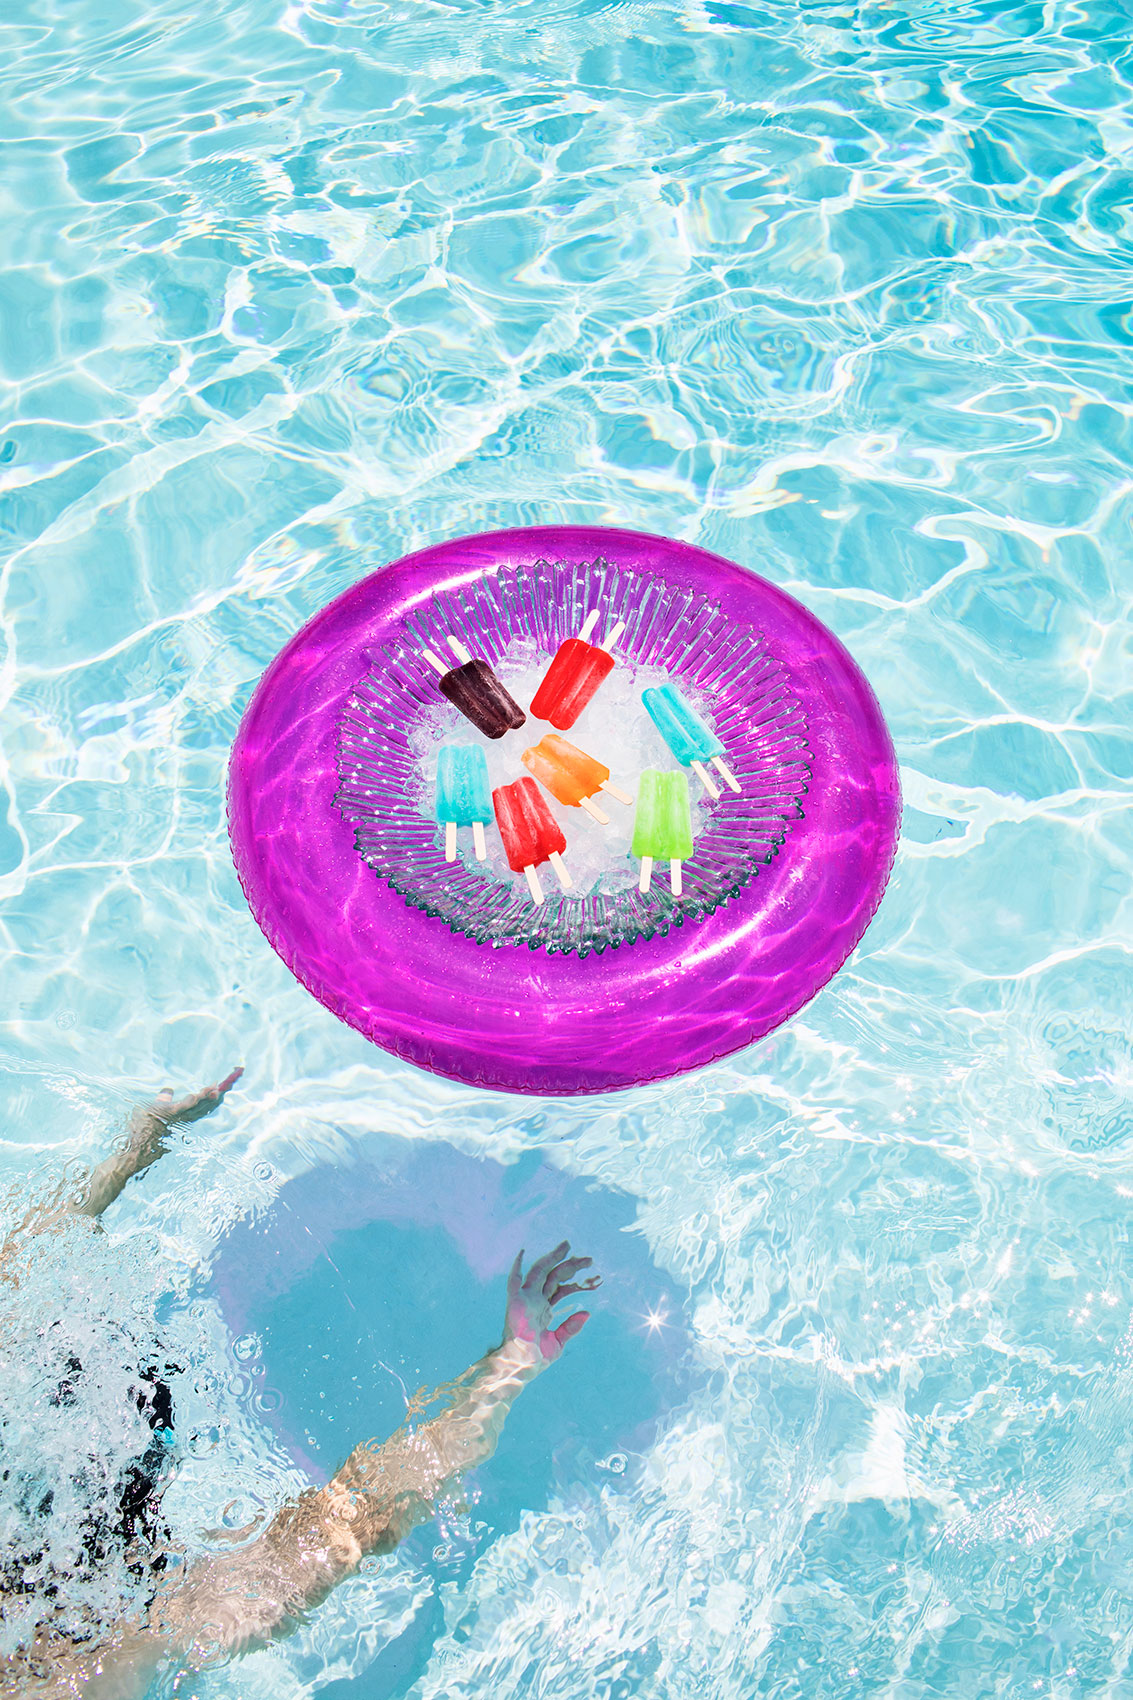 Purple pool float with popsicle - Kimberly Genevieve lifestyle photographer Los Angeles